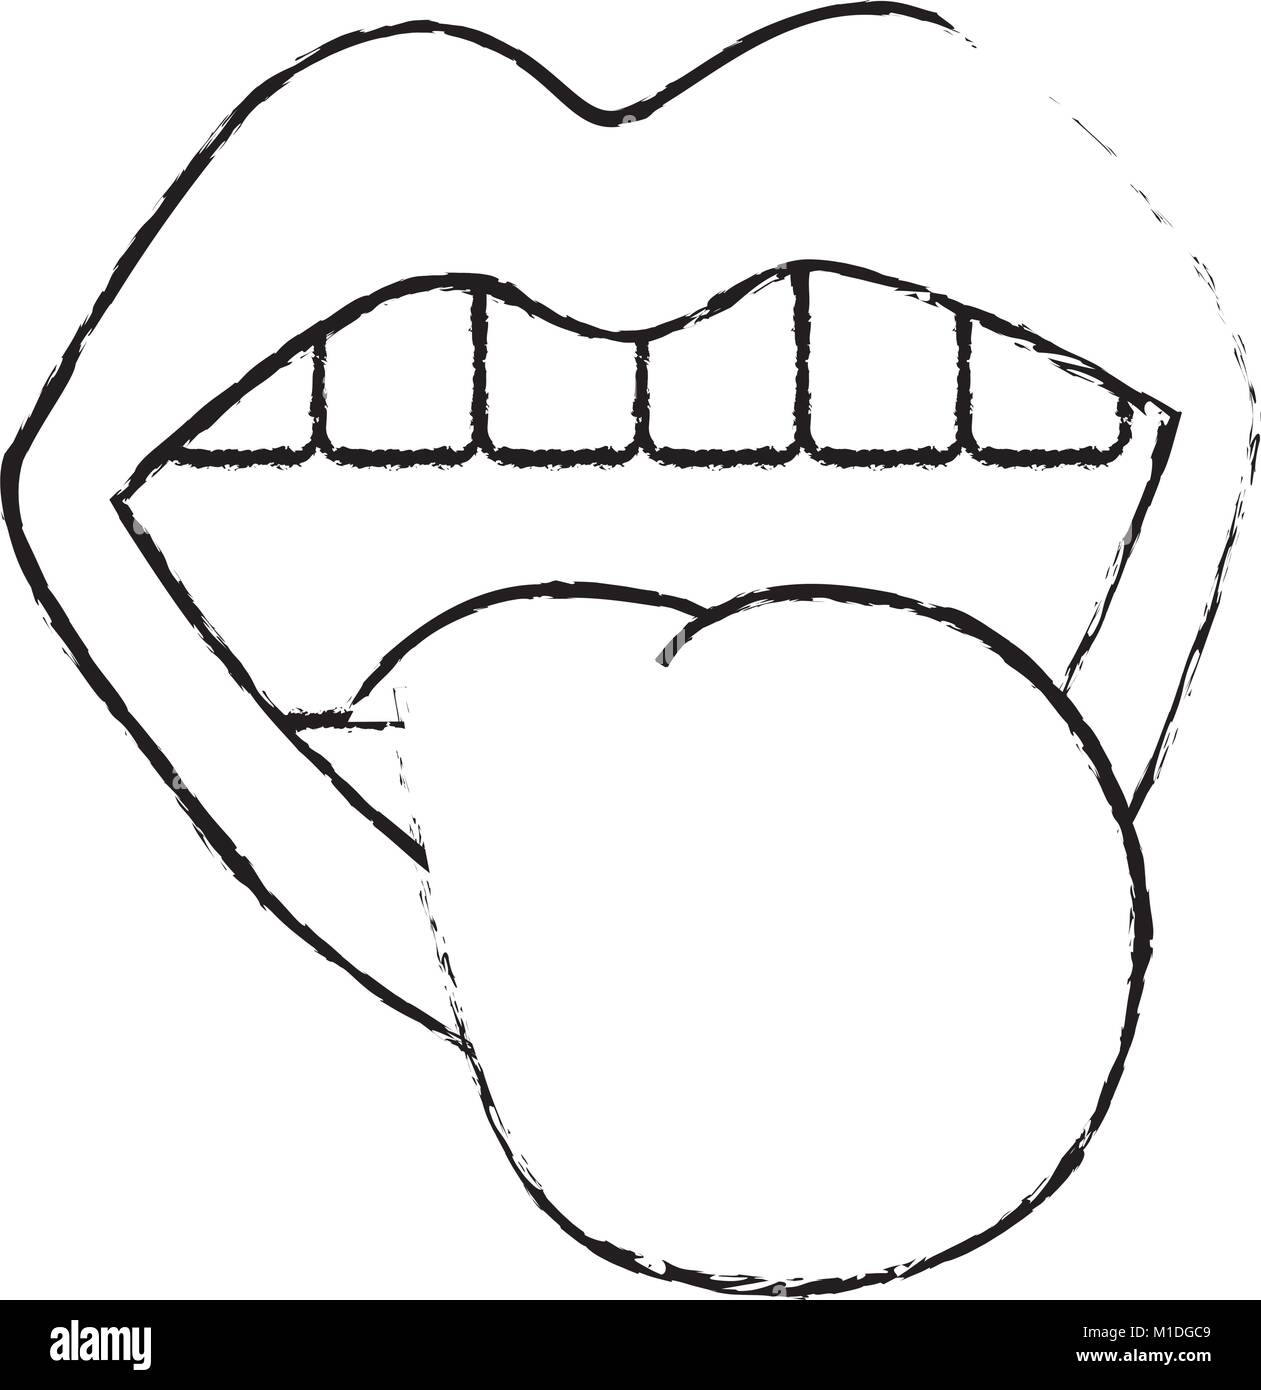 Mouth Tongue Out Vintage Emblem Vector Illustration Stock Vector